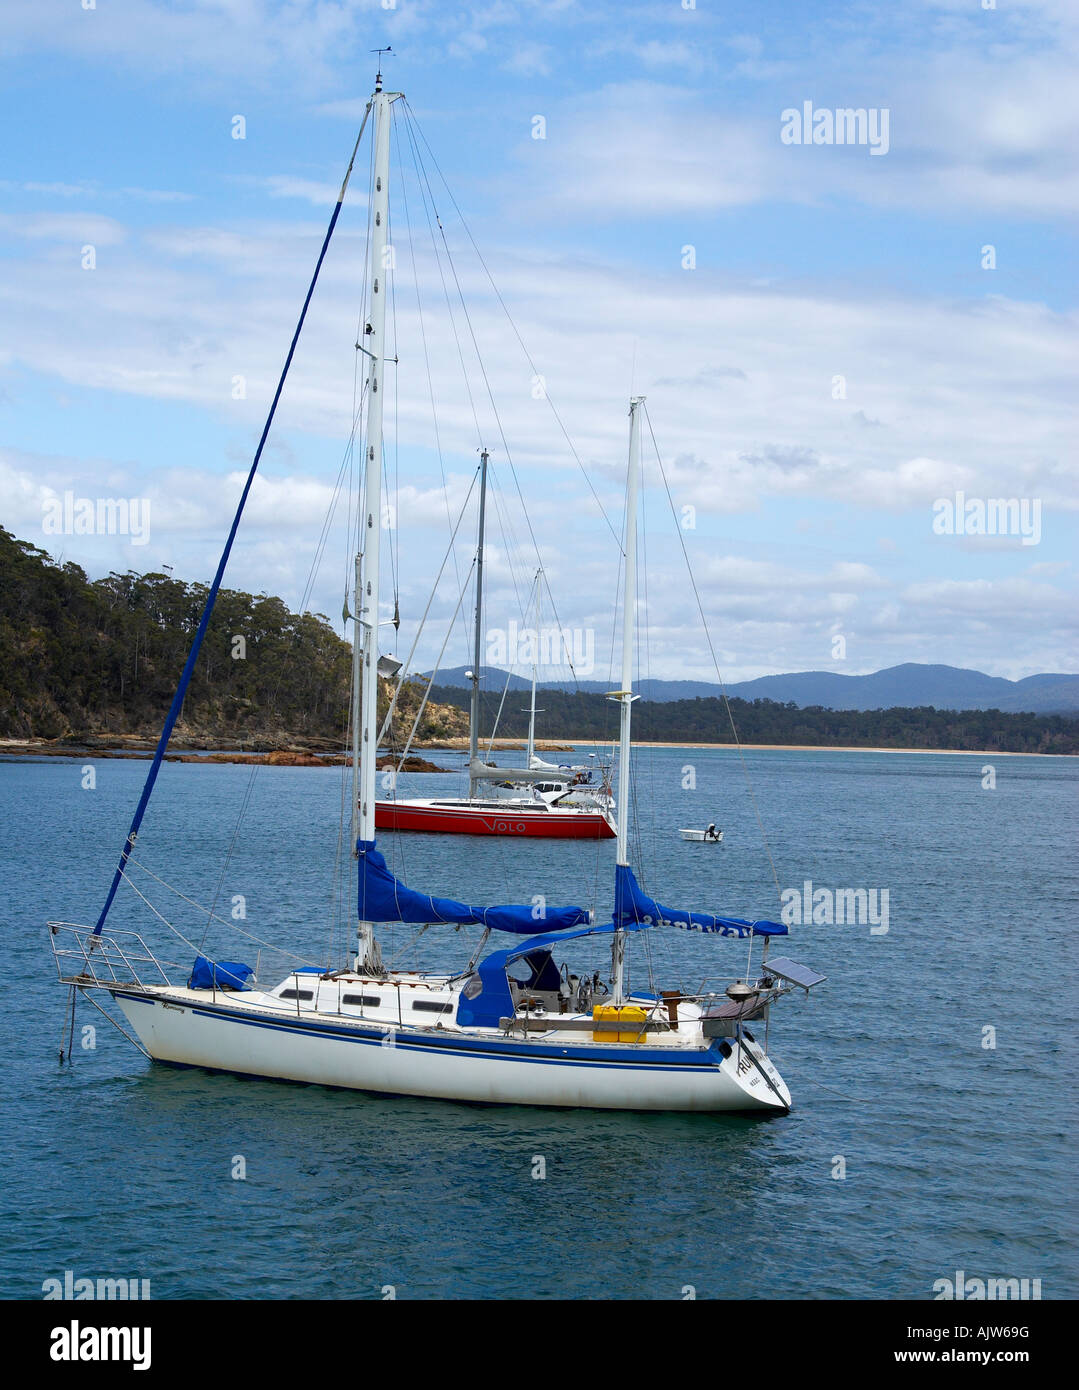 Yachts anchored in the safety of  the bay. Stock Photo